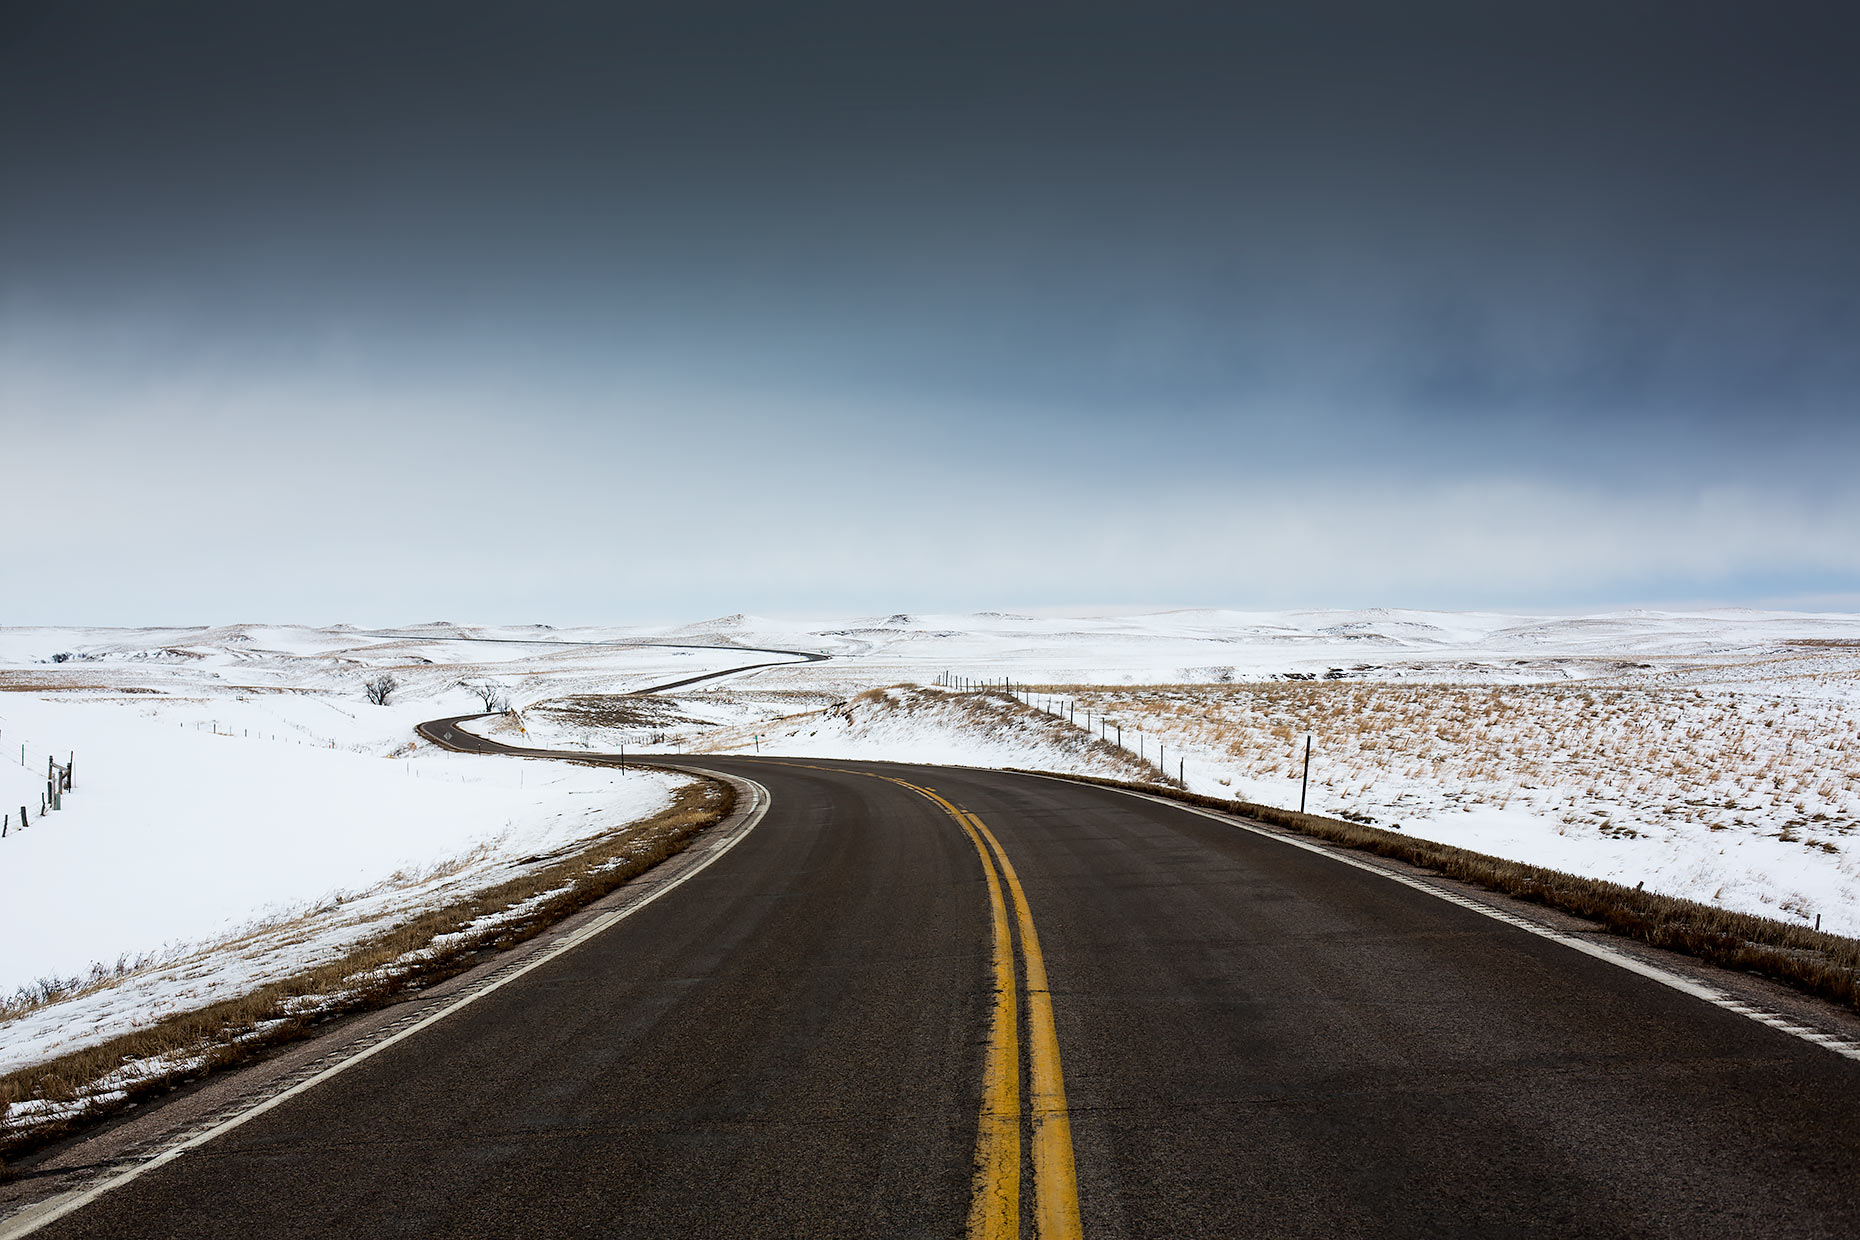 Prairie-road-in-winter-Scott-Gable